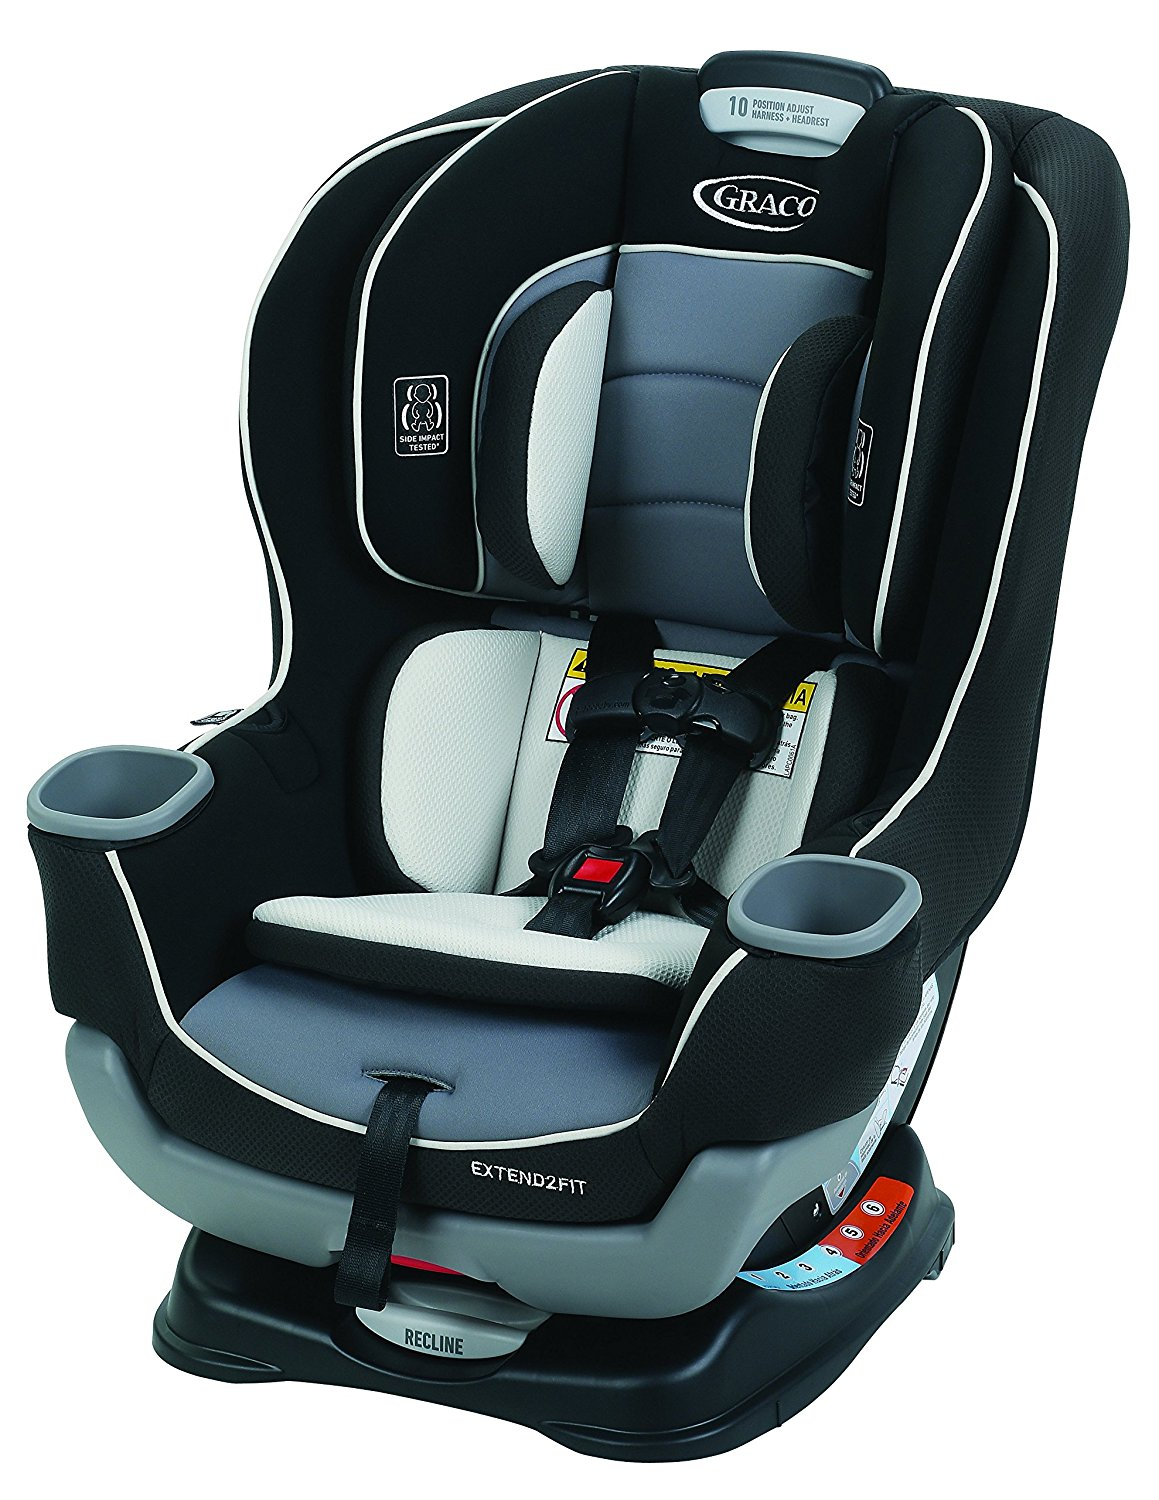 3. Graco Extend2Fit Convertible